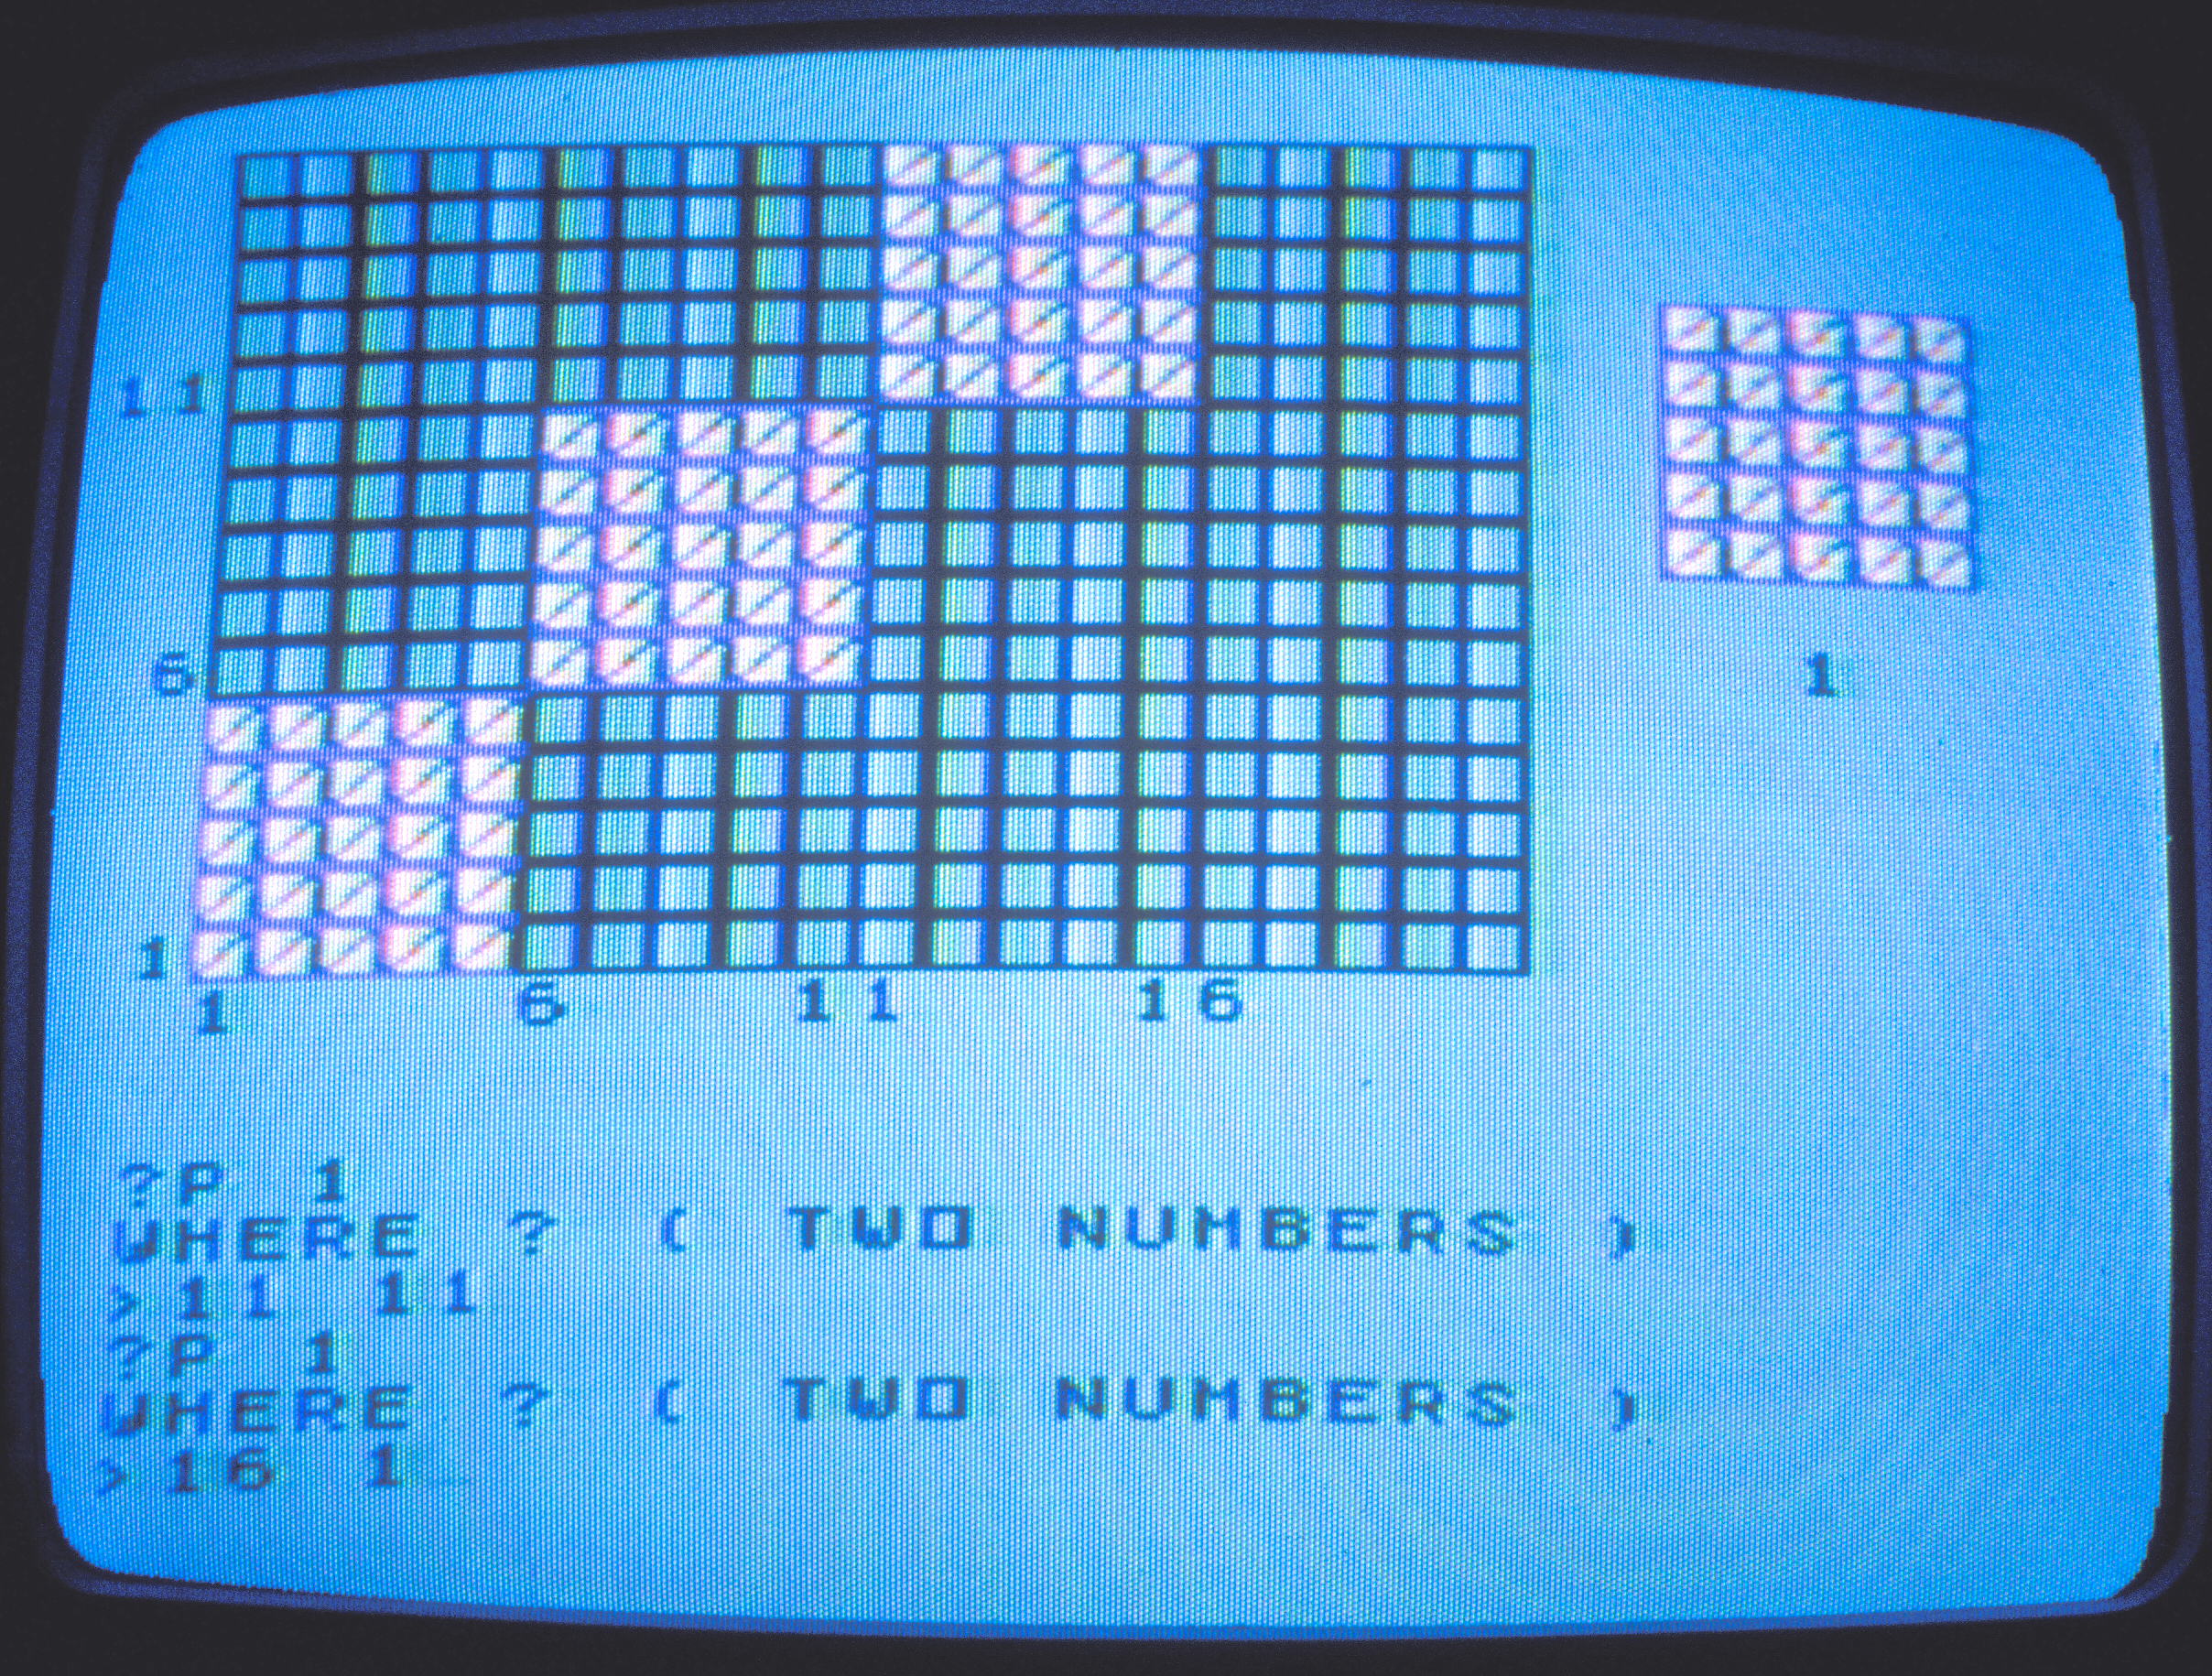 QUILTing by The Numbers, 1982-83